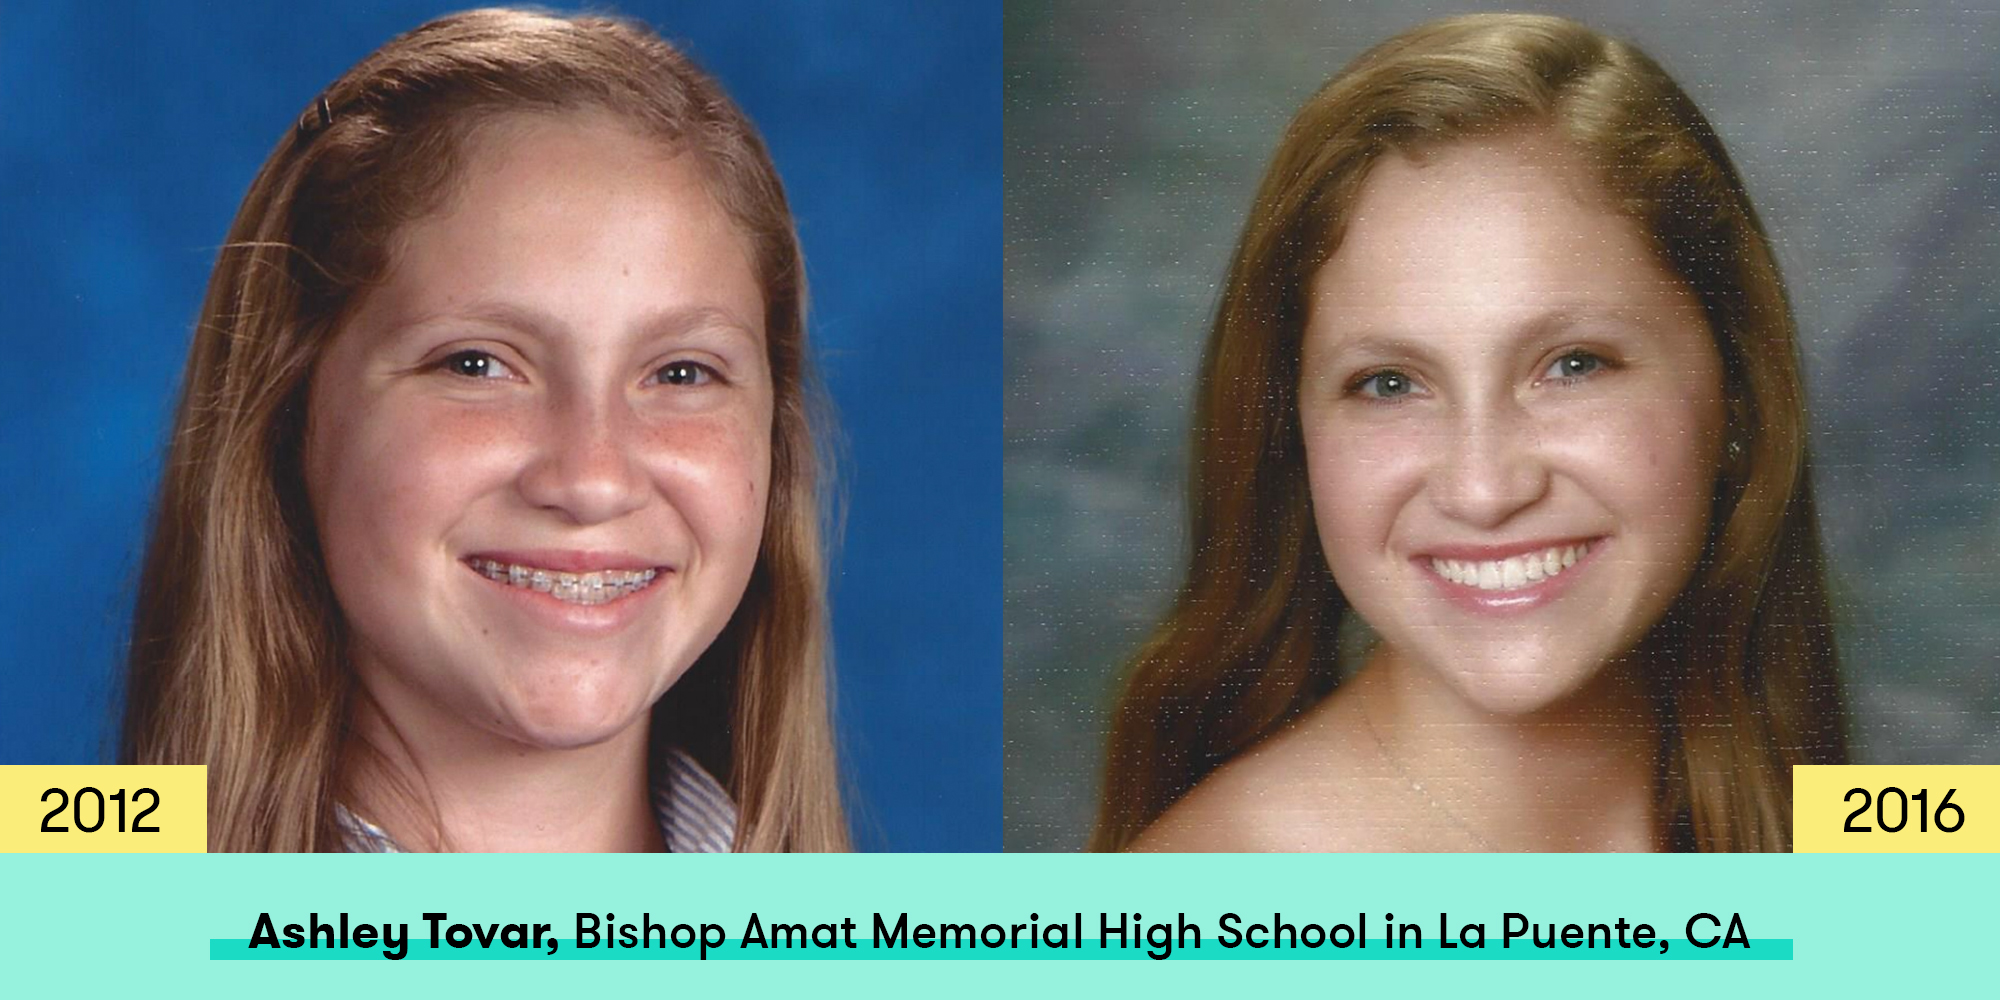 See How 15 Girls Changed Between Freshman And Senior Year